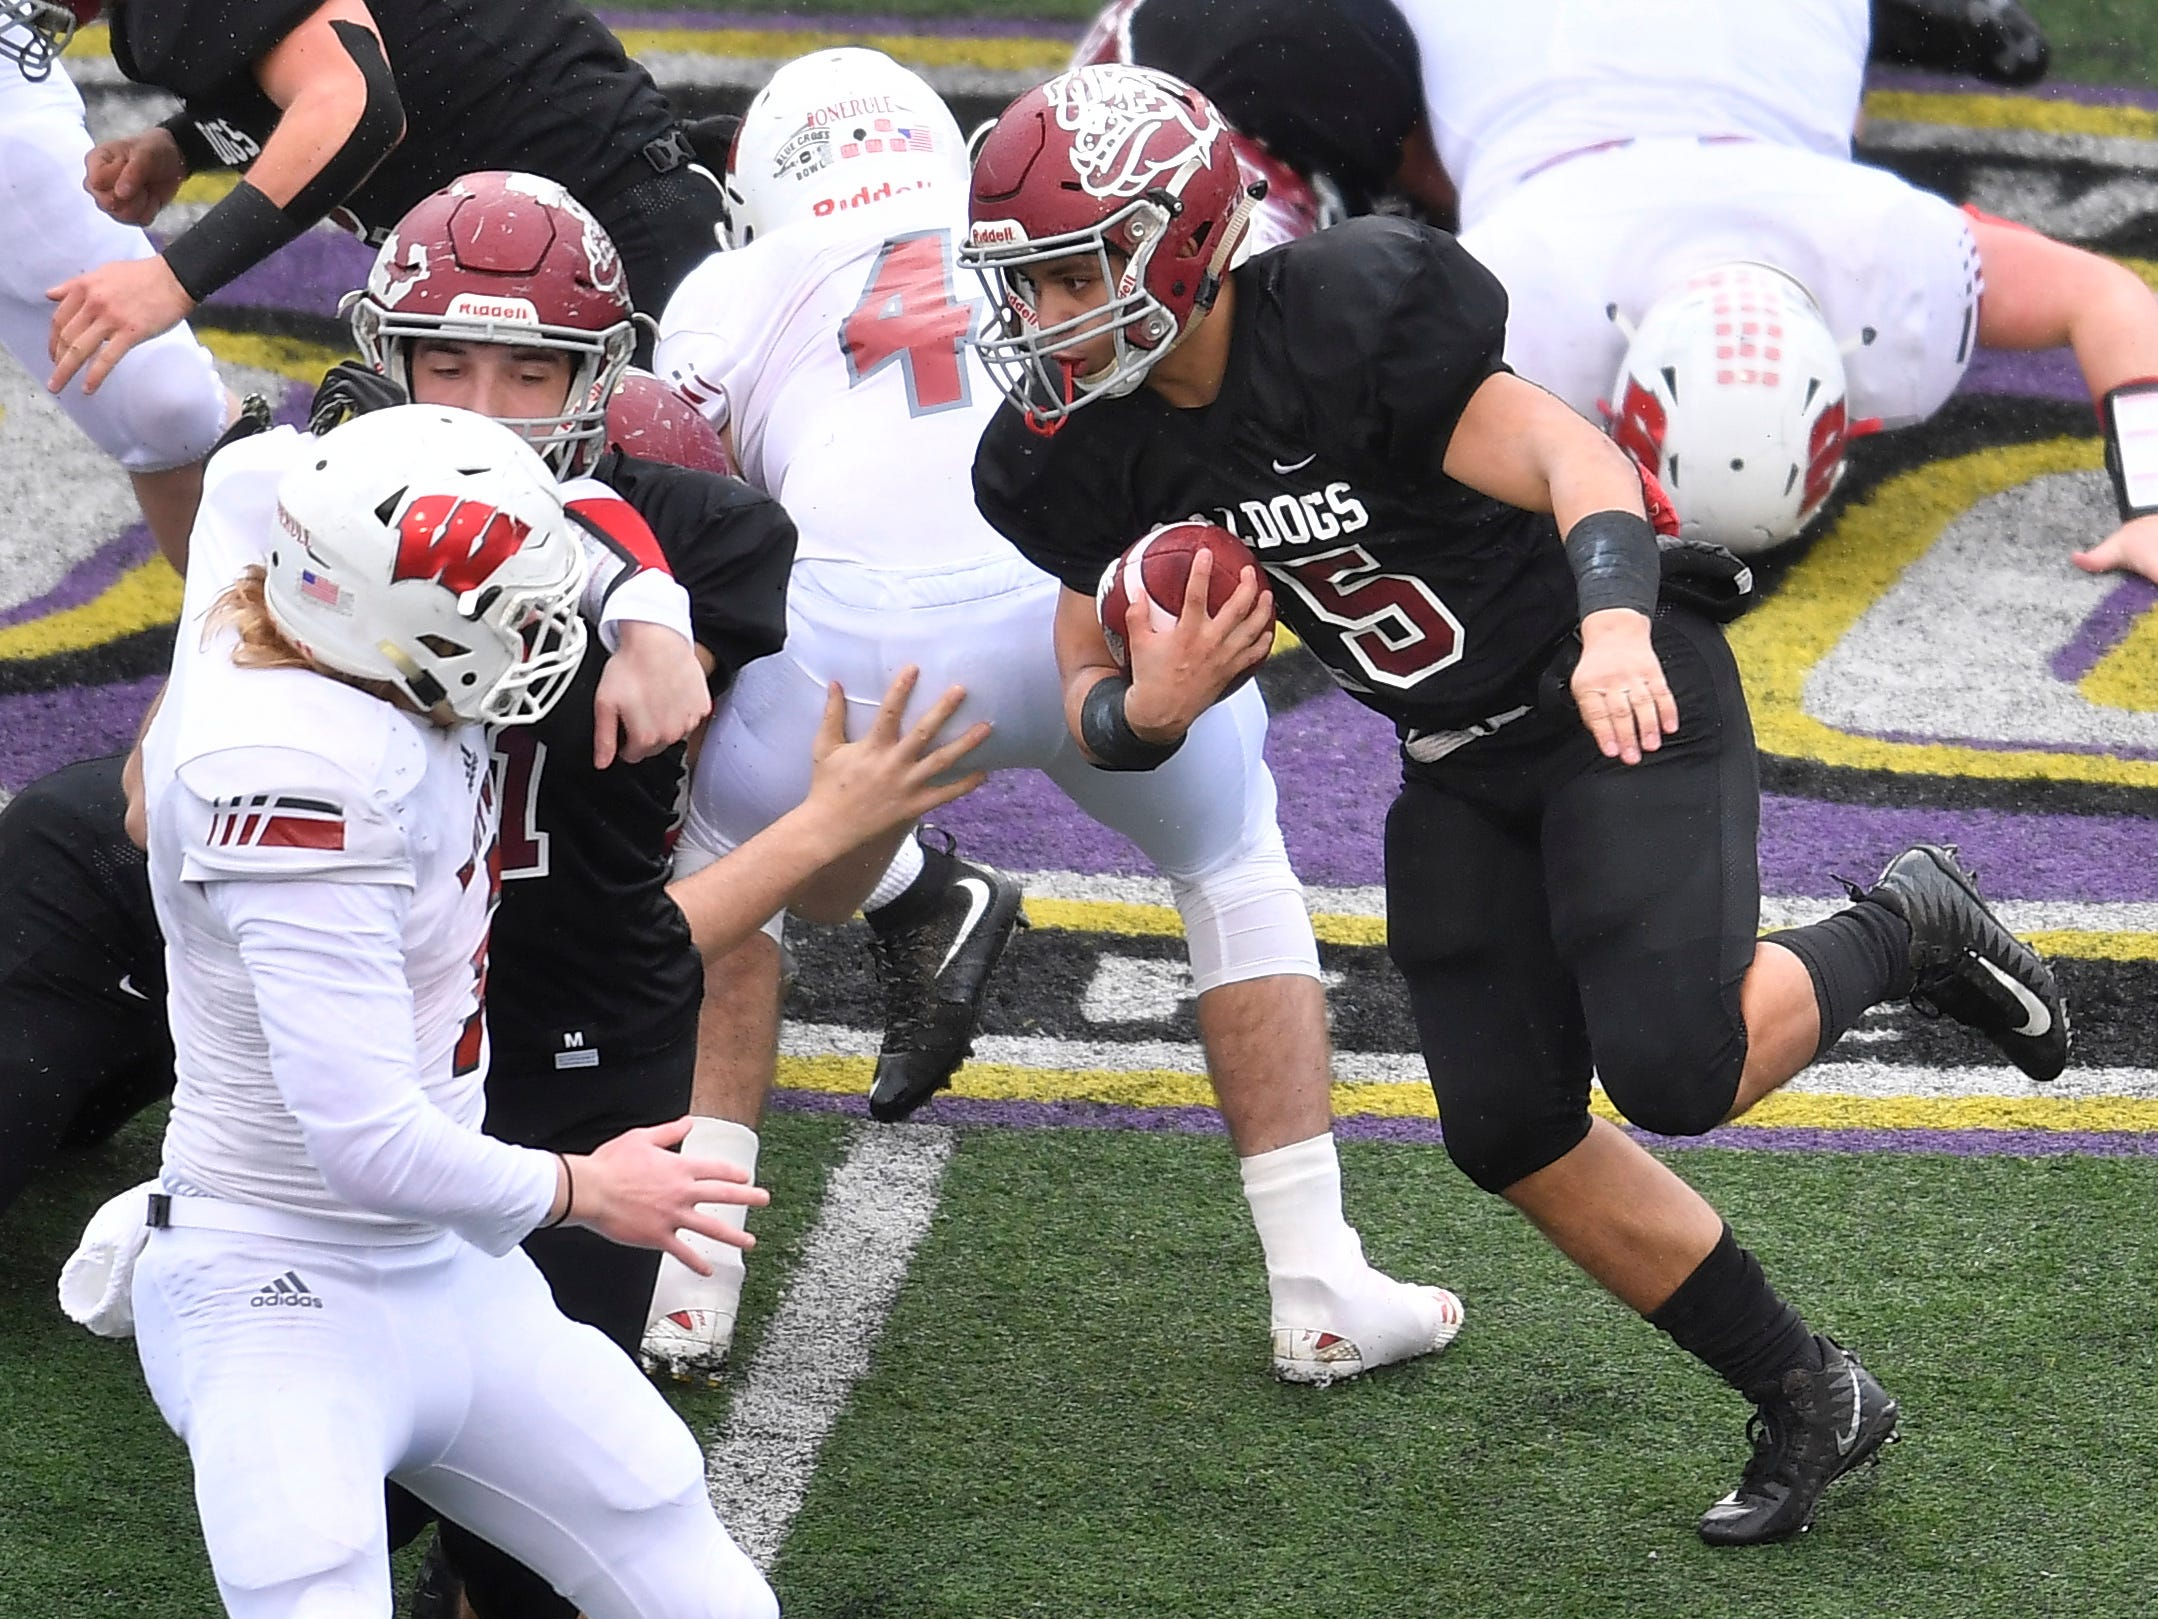 Cornersville's Rhett Woodard (5) gains yards in the first quarter at the Class I-A BlueCross Bowl state championship at Tennessee Tech's Tucker Stadium in Cookeville, Tenn., on Saturday, Dec. 1, 2018.